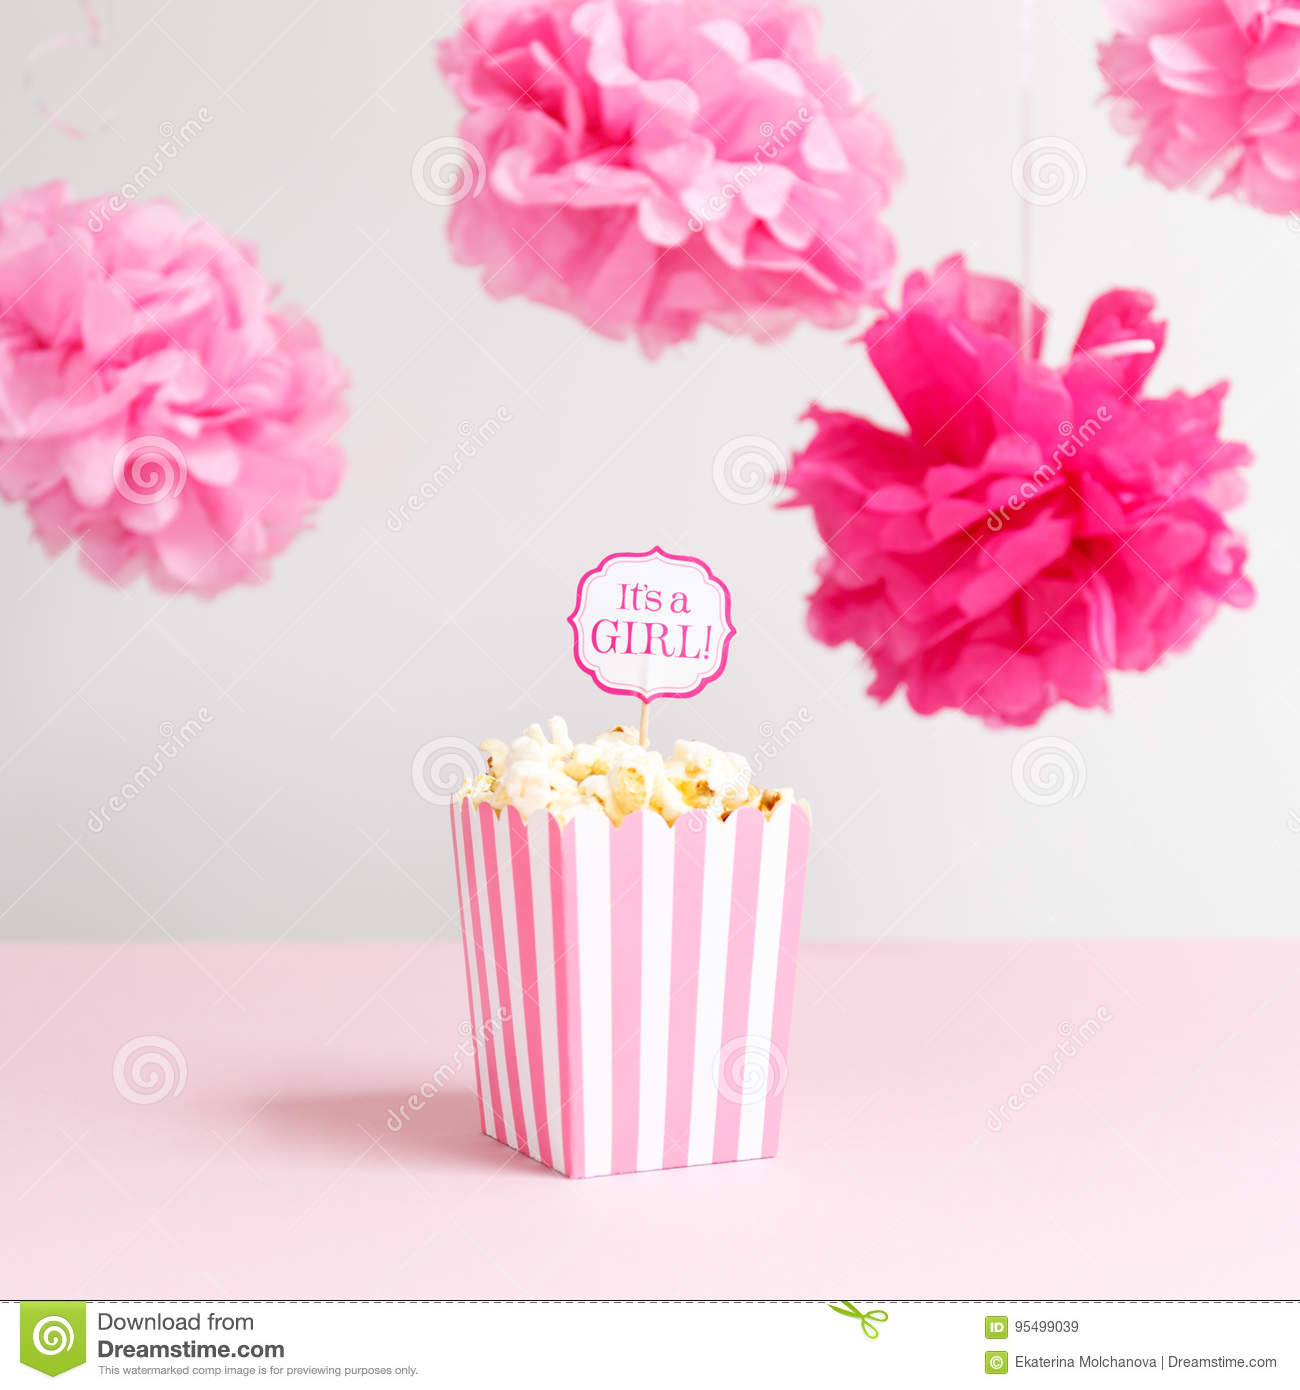 Its A Girl Sign In A Popcorn Bag At The Baby Shower Party Bab